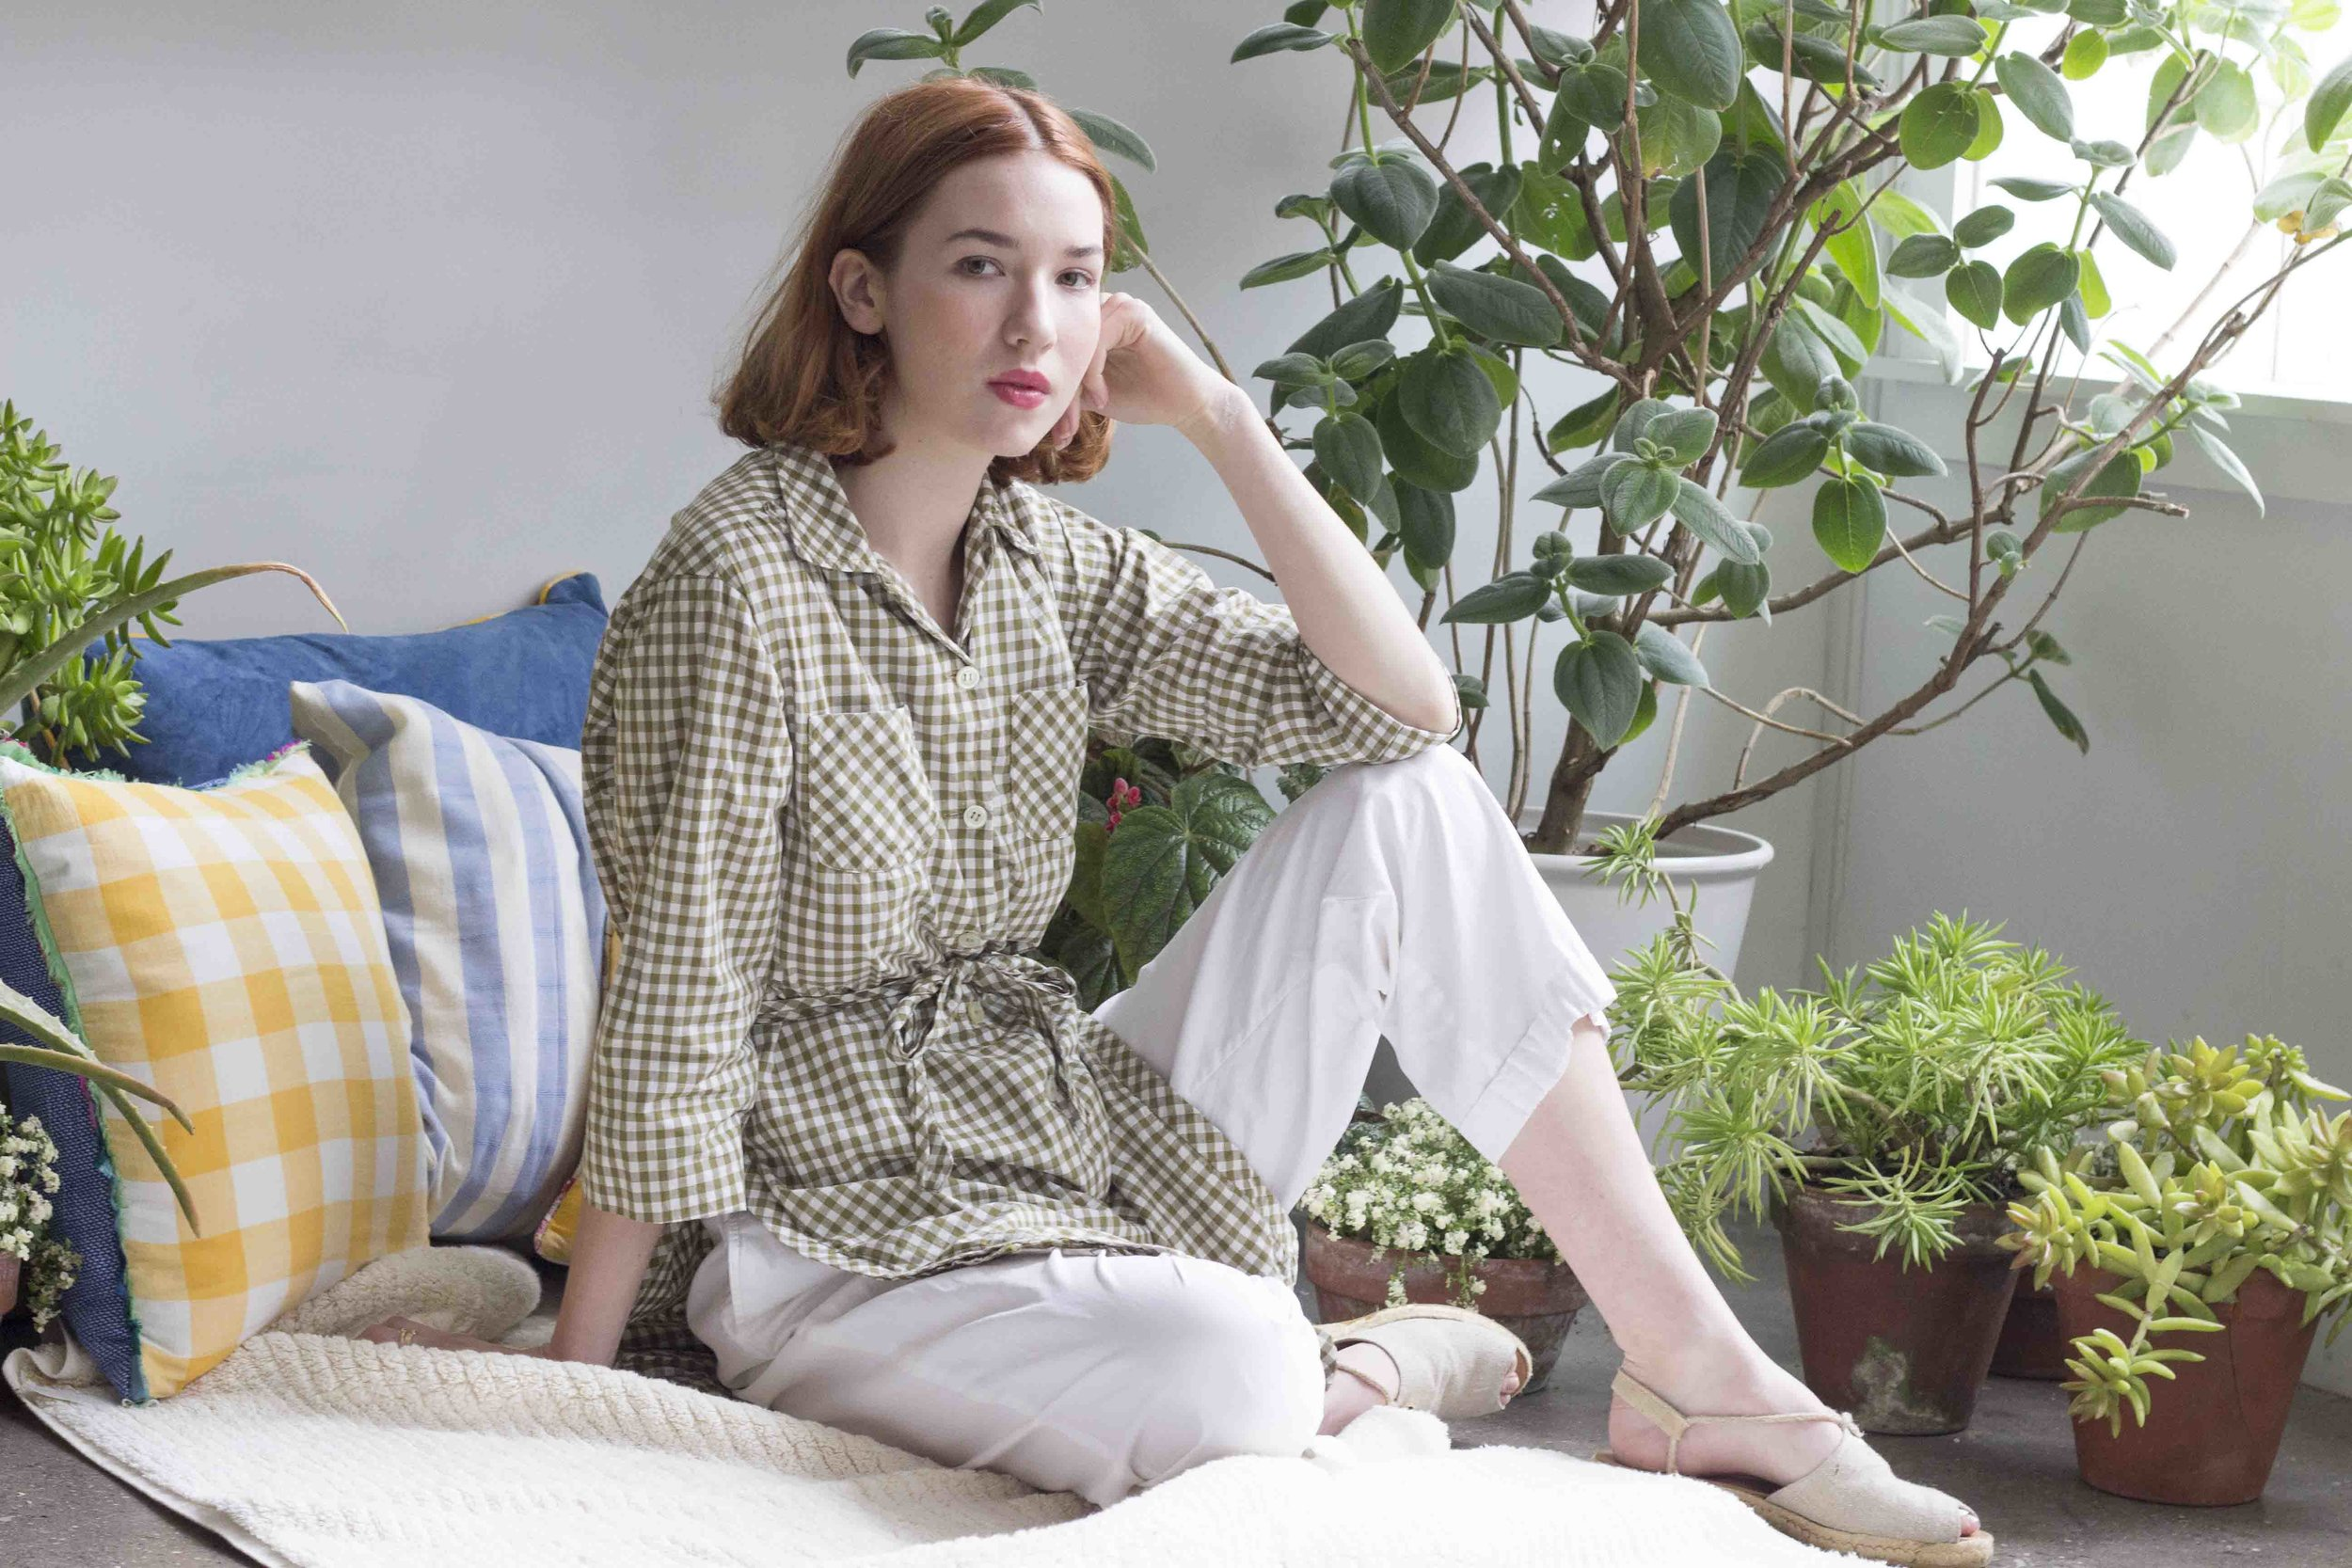 Cuttalossa Pillows and Plush Cotton throw, Gingham tunic by Wayward Collection